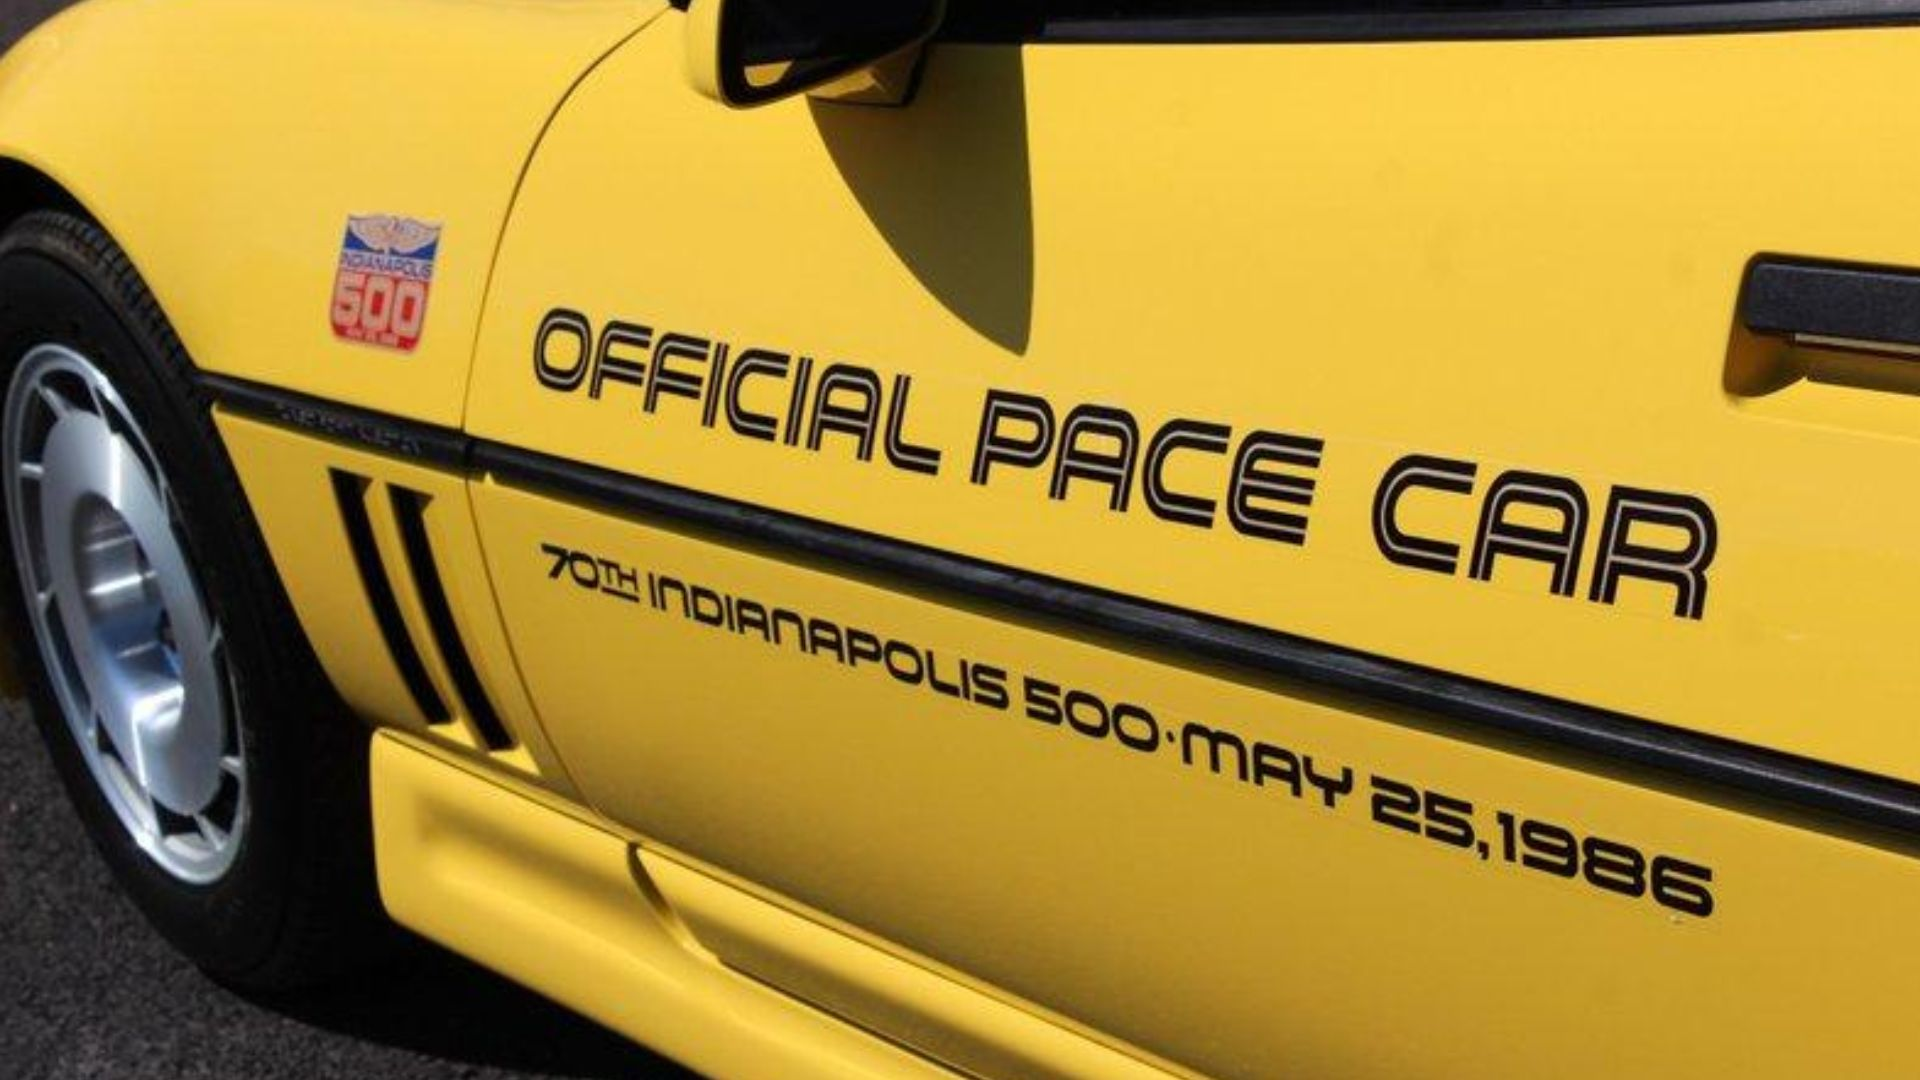 1986 Chevy Corvette Indianapolis 500 Pace Car Offers Drop-Top Fun